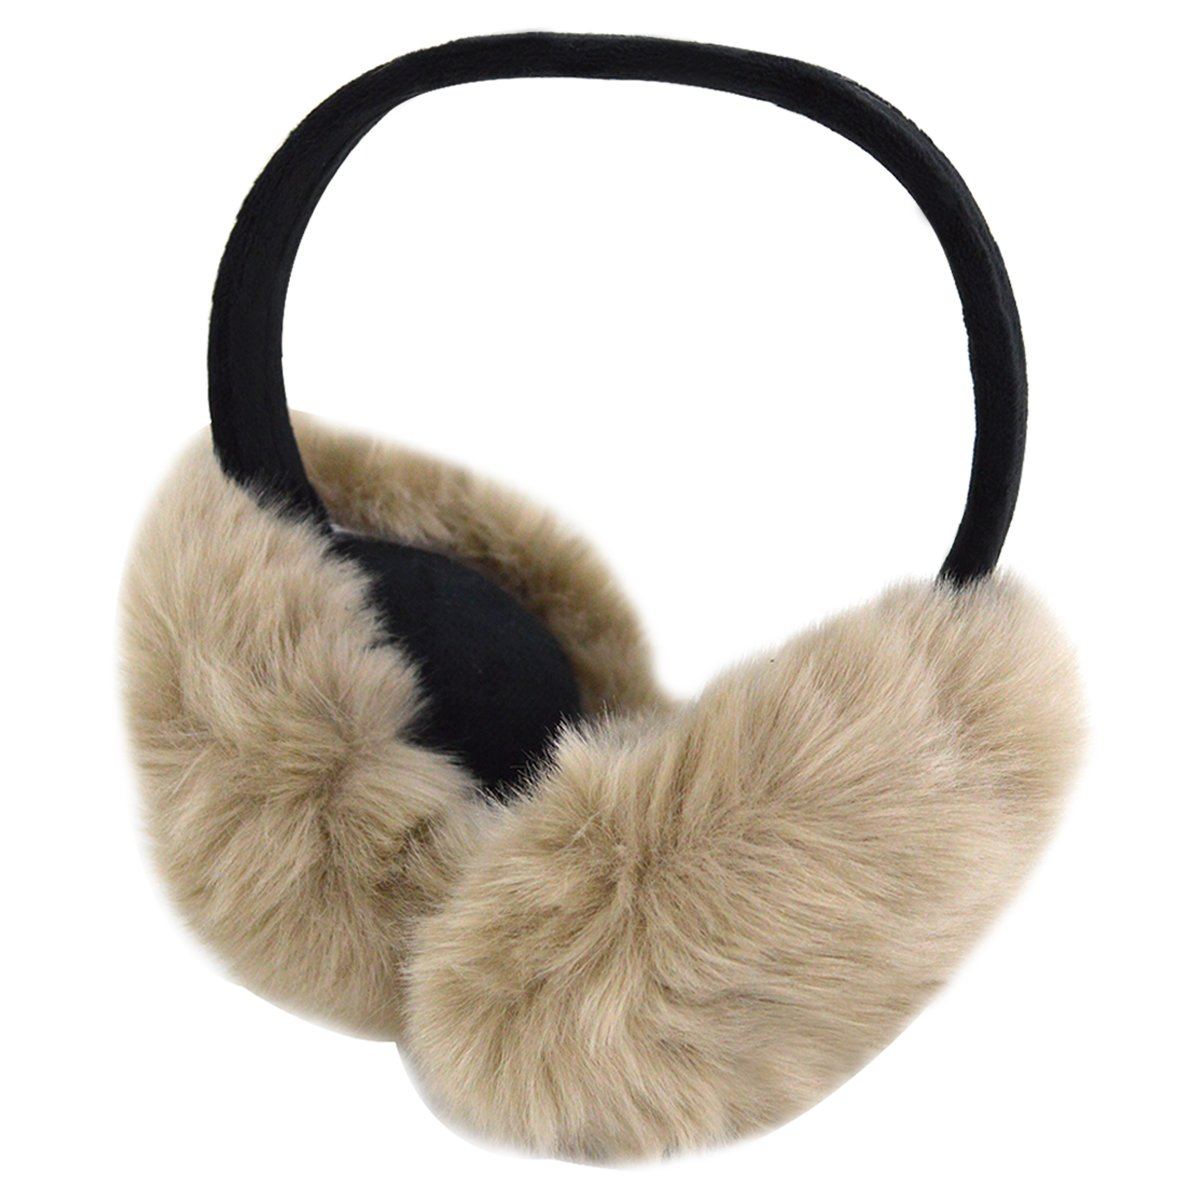 Editha Men Women Faux Fur Earmuff Winter Warm Earcap Foldable Ear Muffs Sport Gym Earmuffs Outdoor Travel Earcaps 1791 Khaki